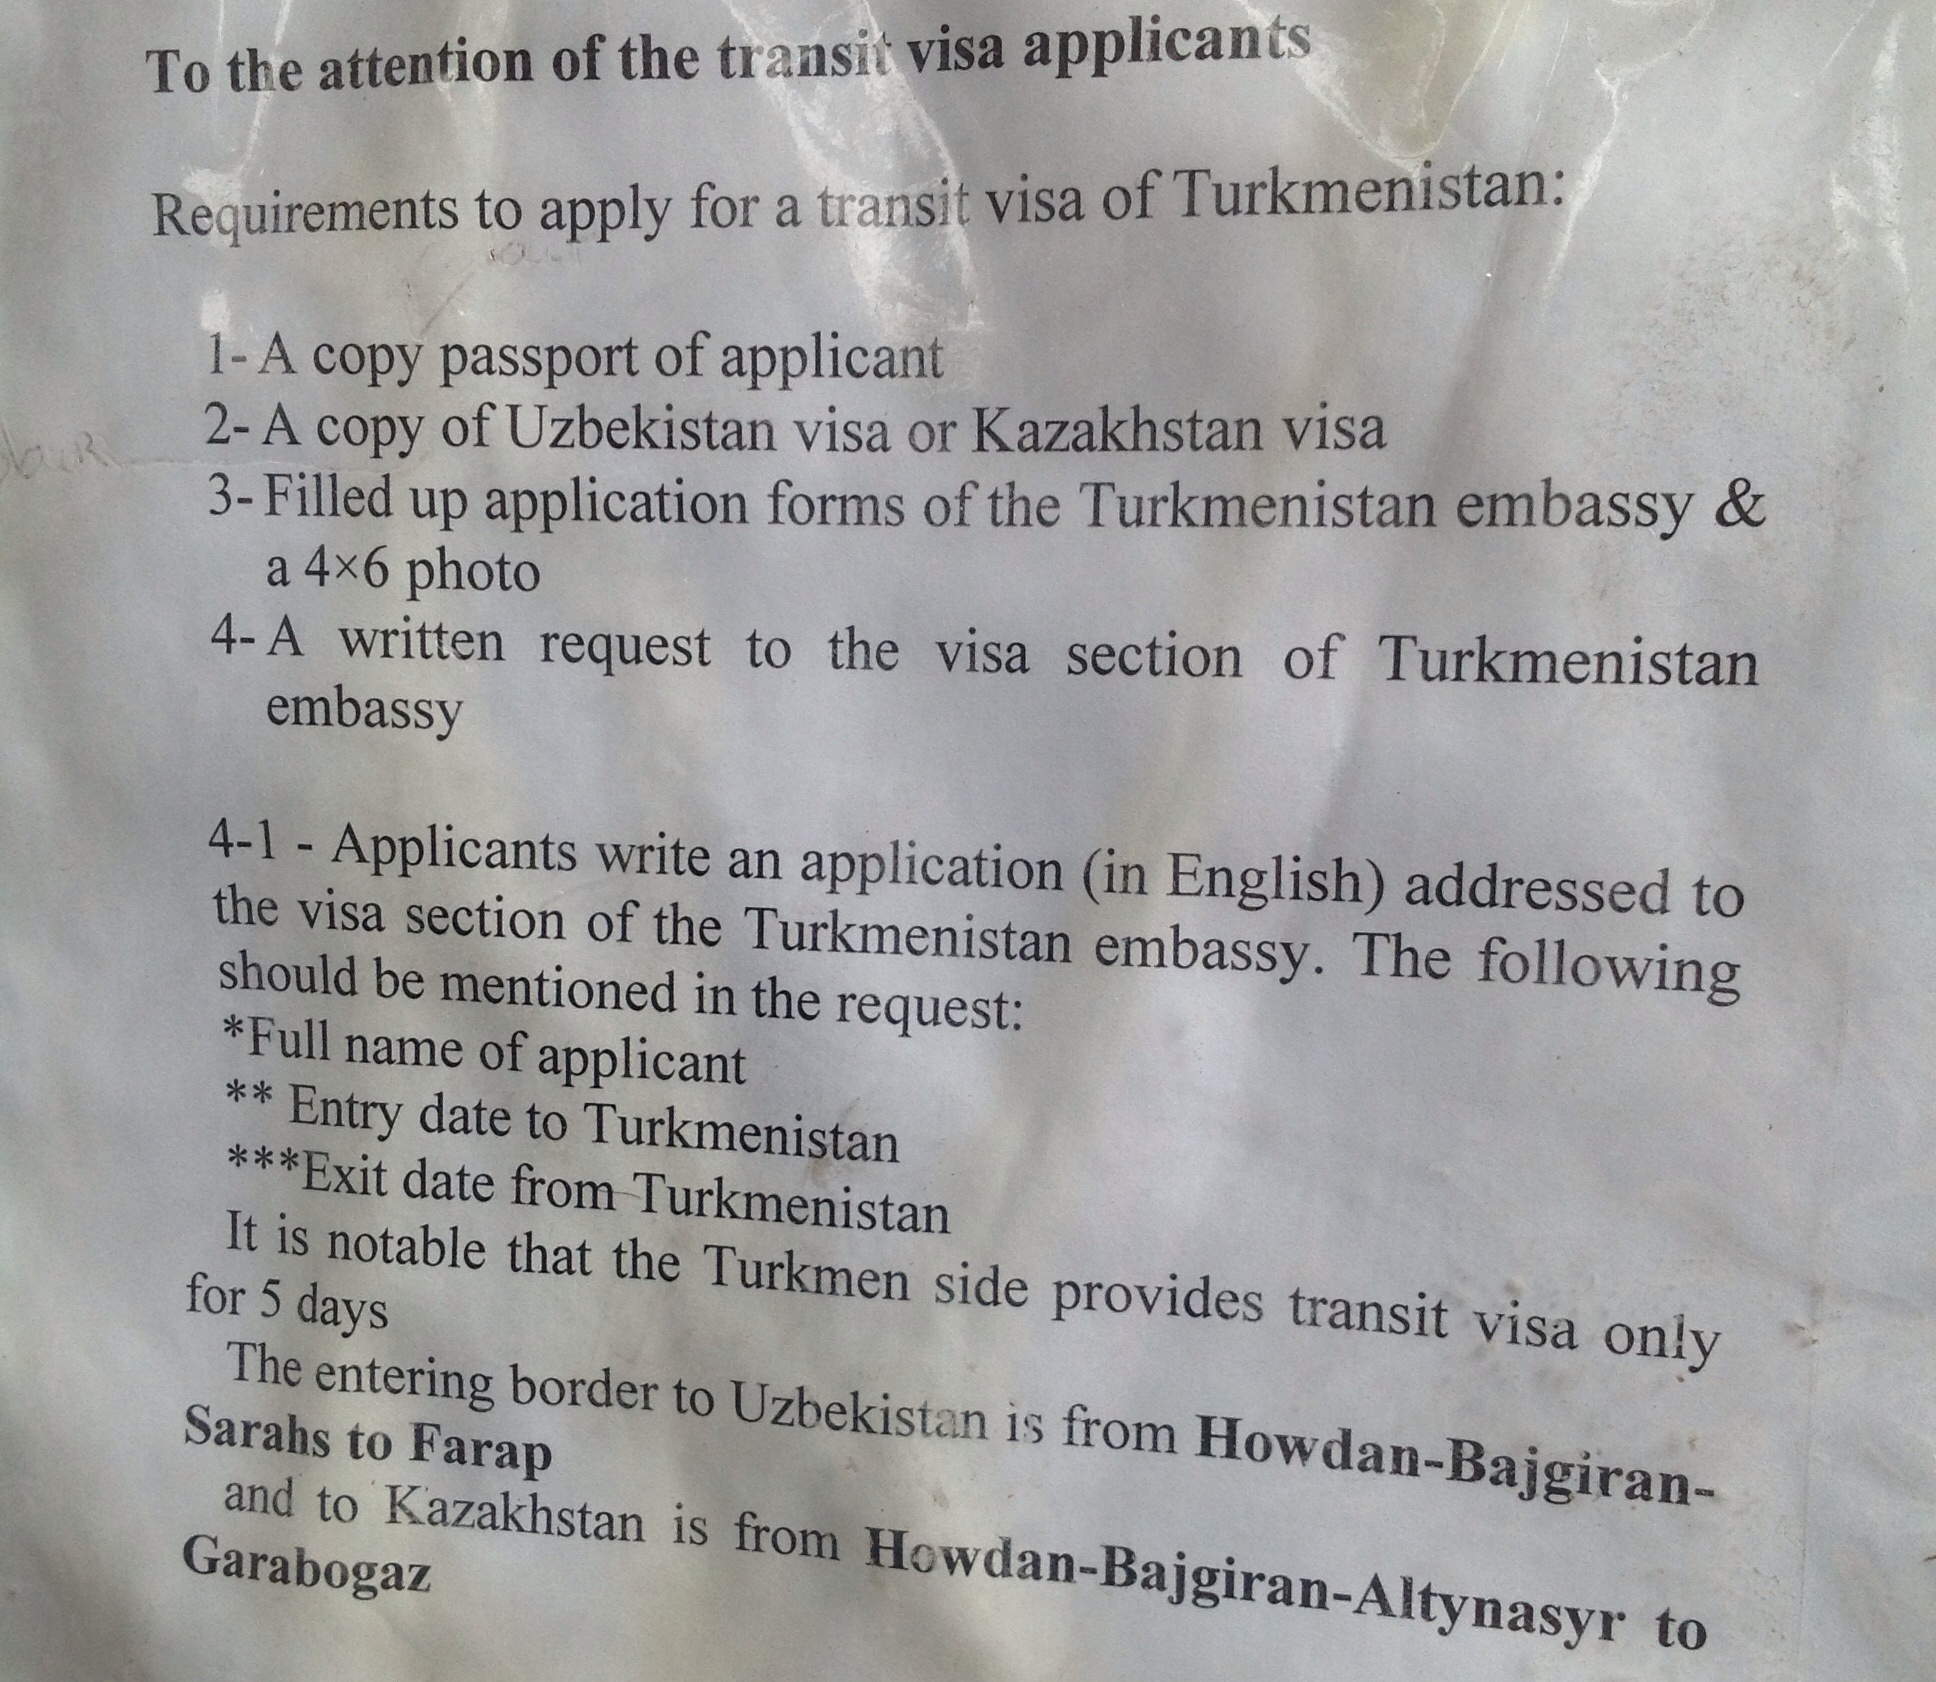 Visa border crossing information for central asia 2013 after 5 days well we actually took two weeks we were back we had to fill in another visa application form different to the first one and attach a altavistaventures Image collections